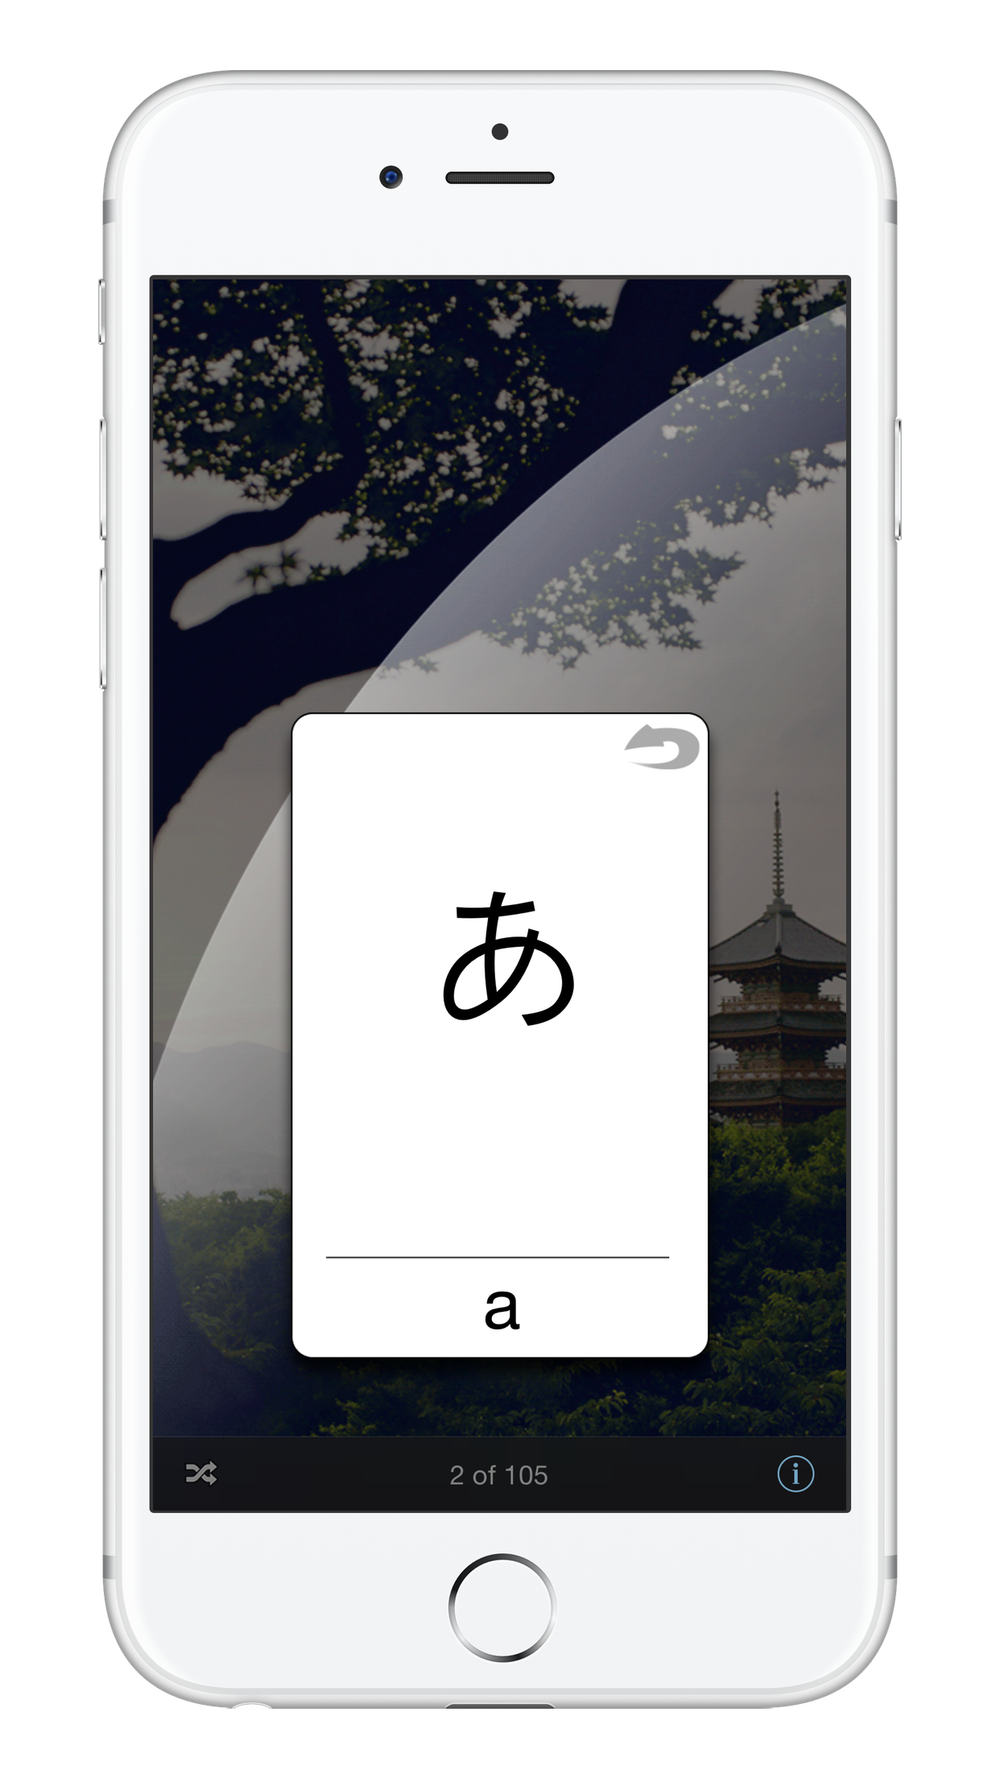 Hiragana screenshot 2.png